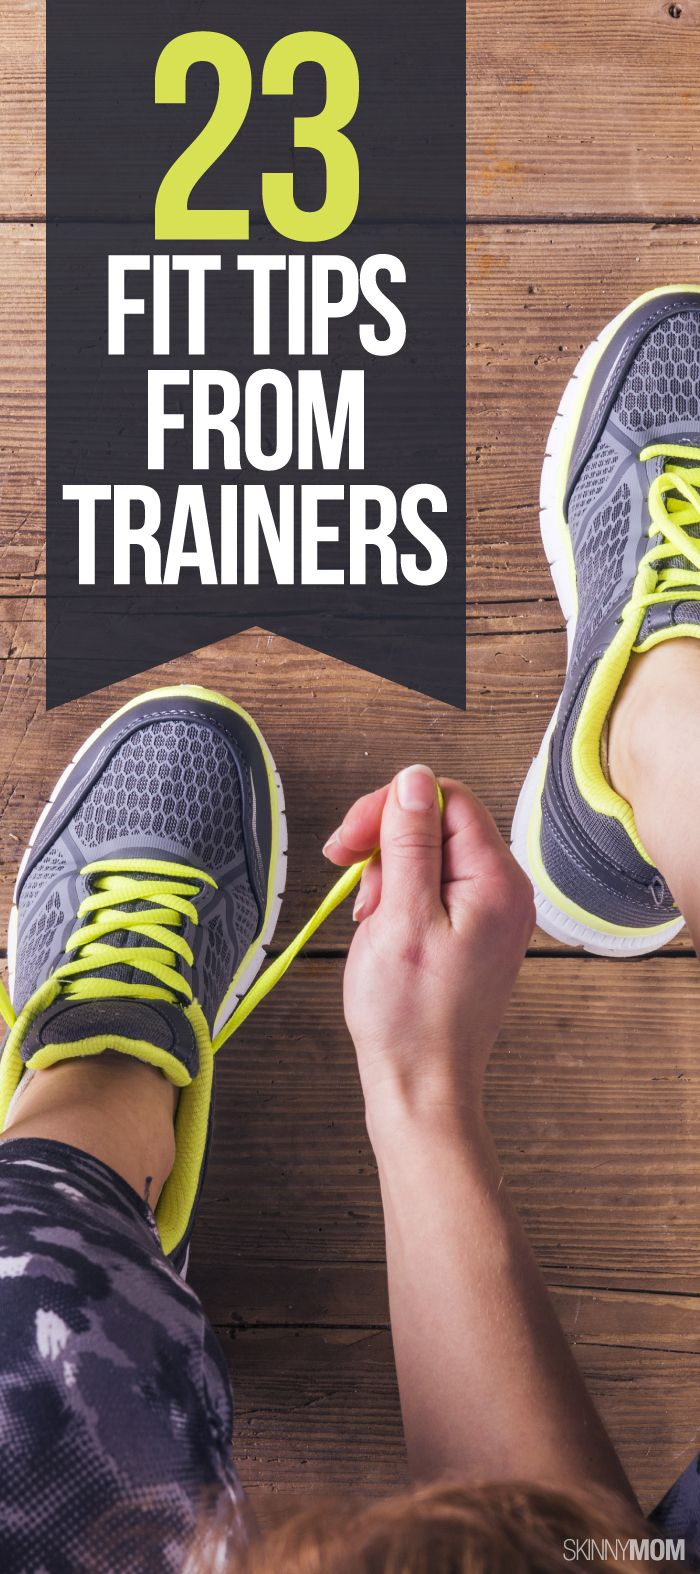 Fit tips from trainers to help lose the weight!